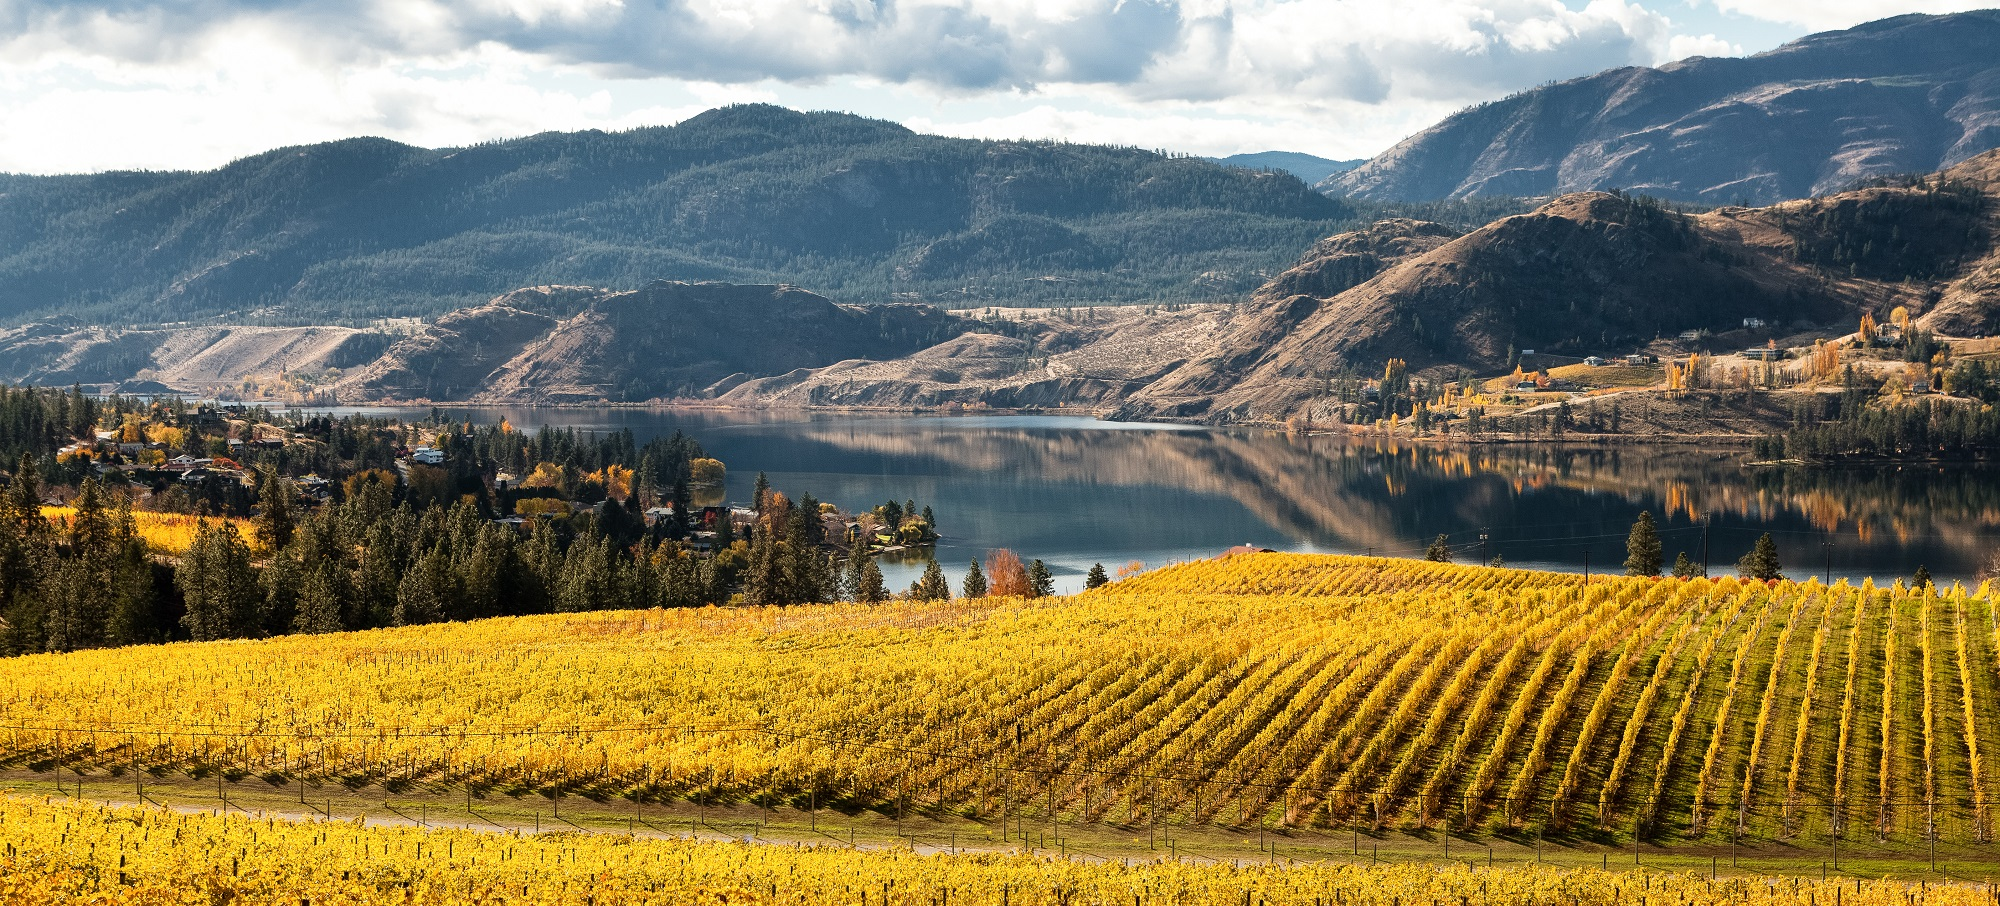 Thompson Okanagan